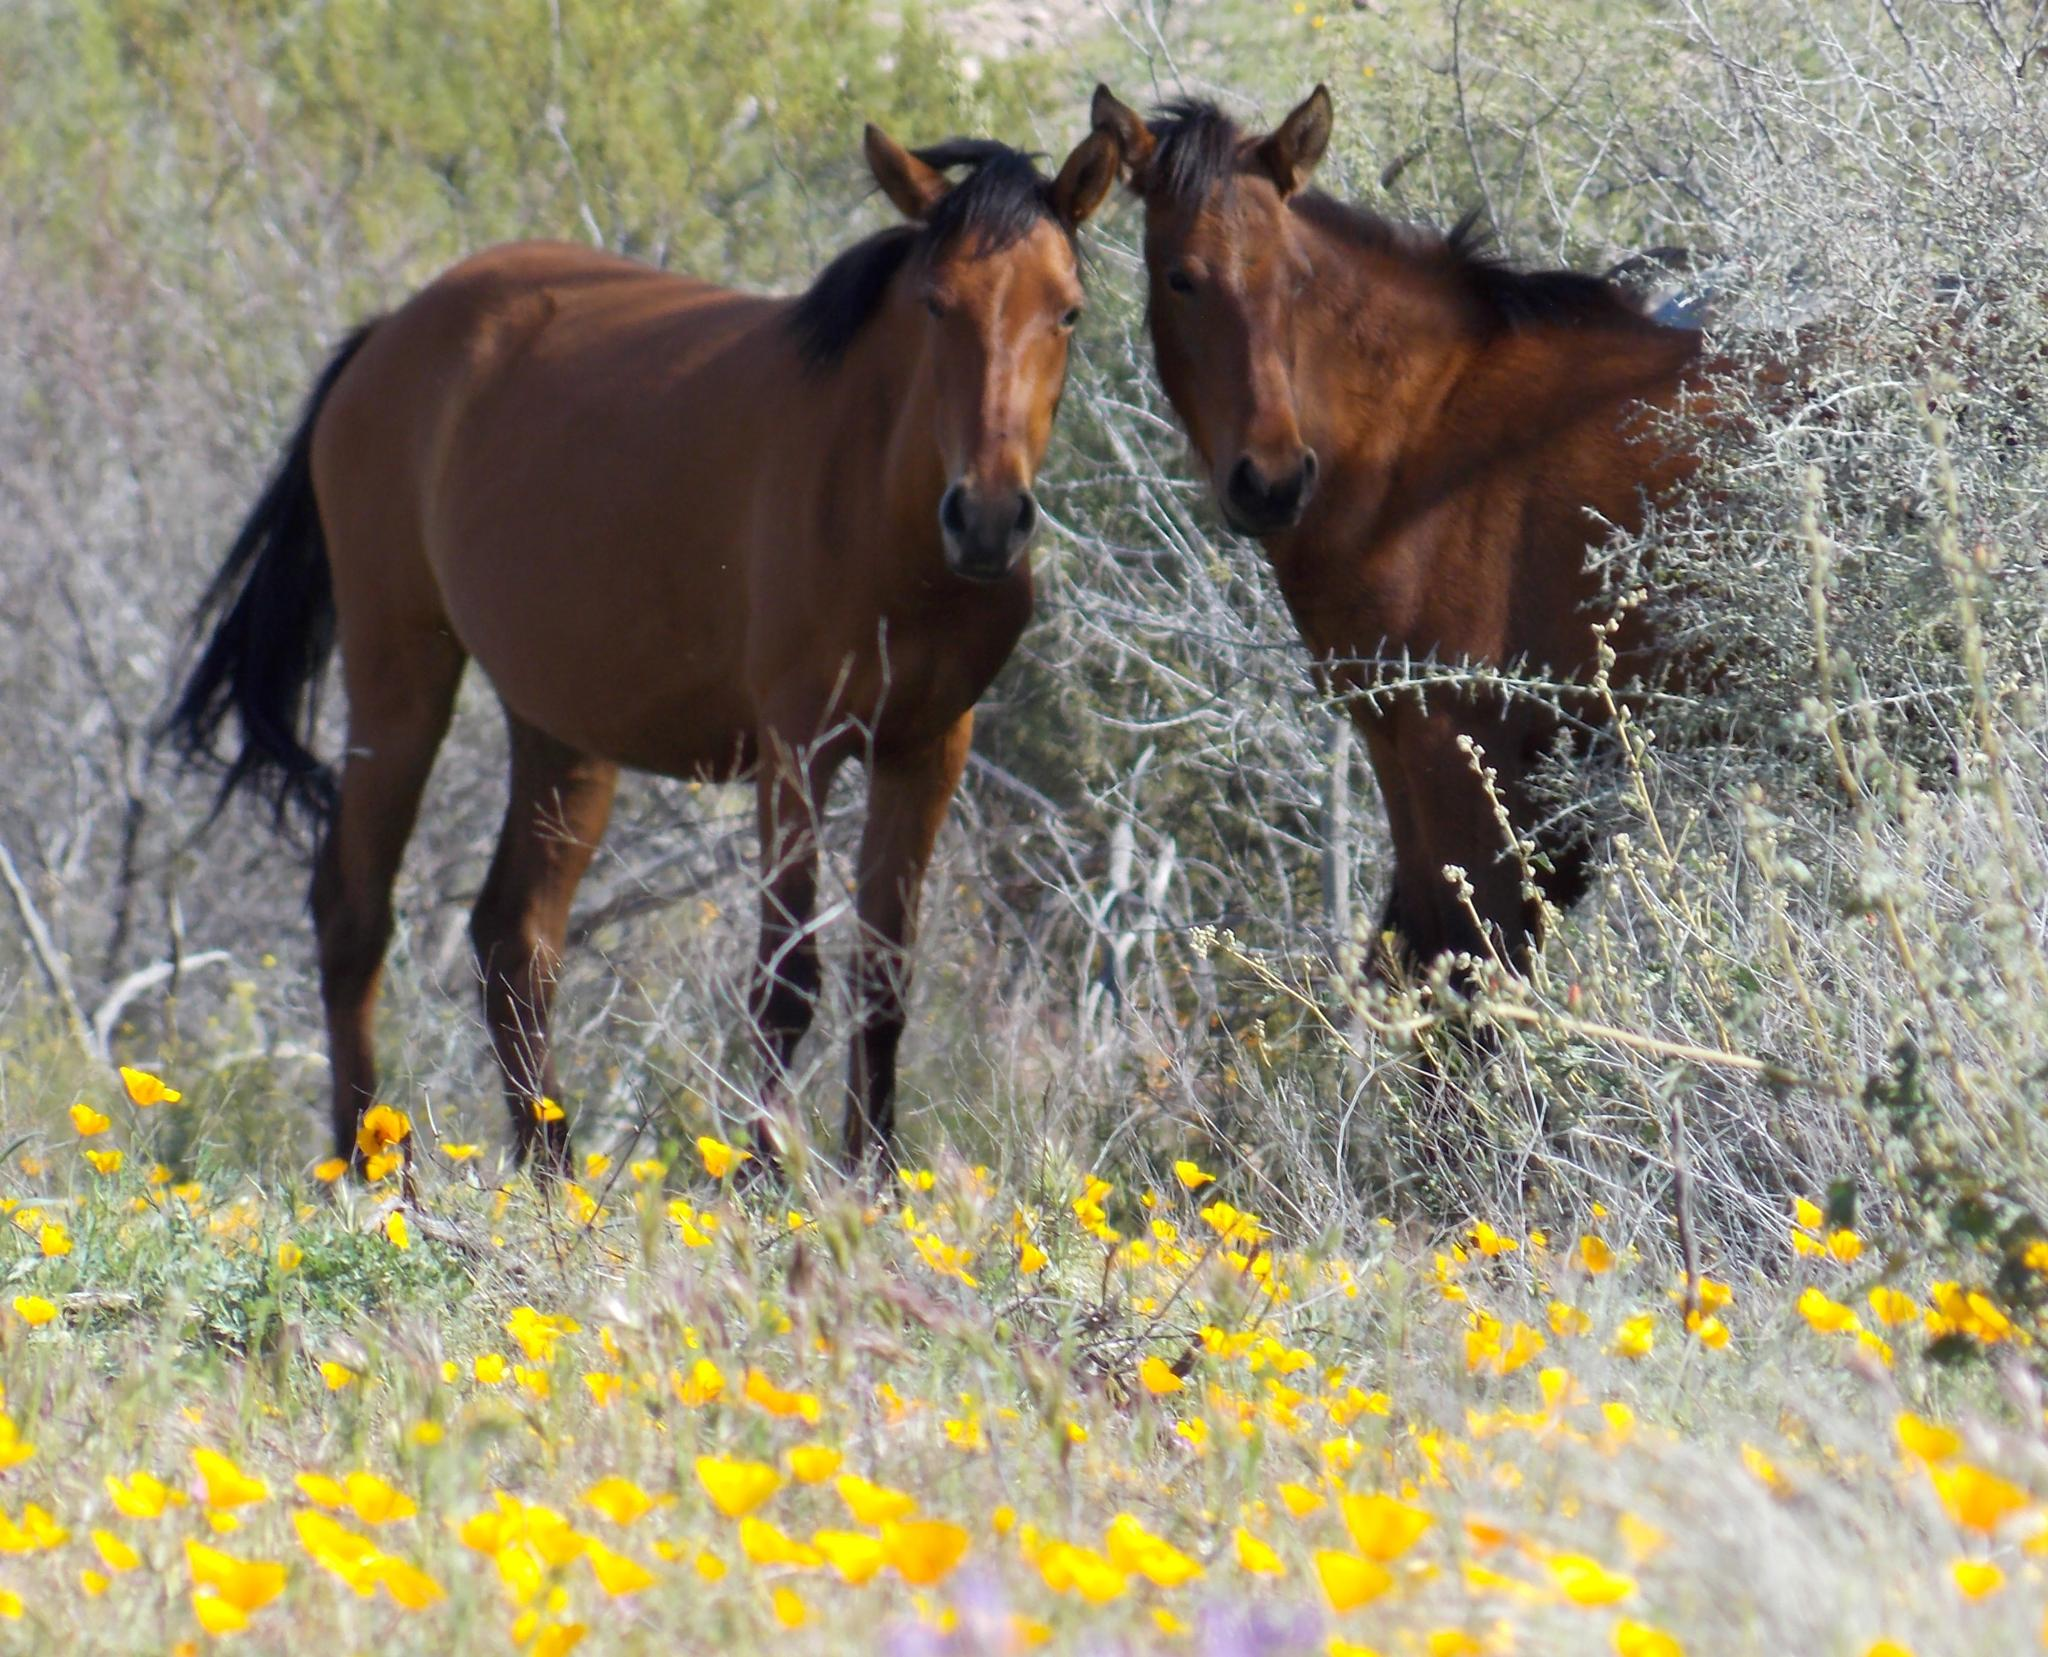 Wild horses in the Poppies by JanetSNeil